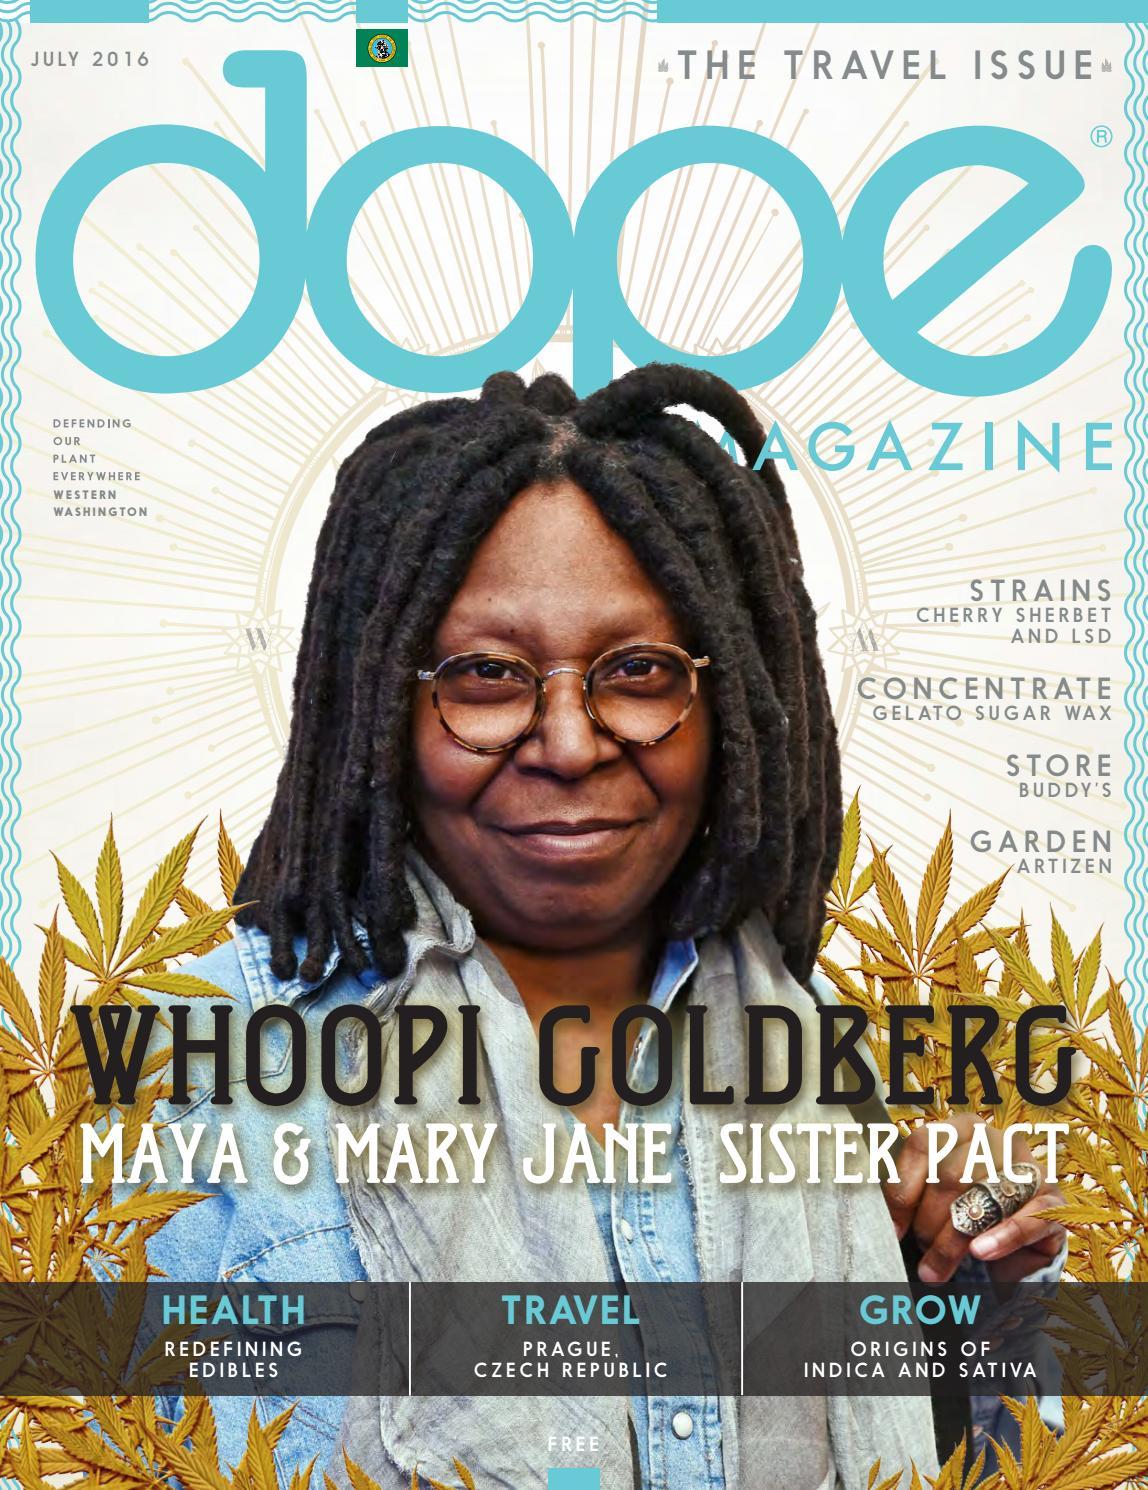 Dope Magazine - July 2016 - The Travel Issue - Western